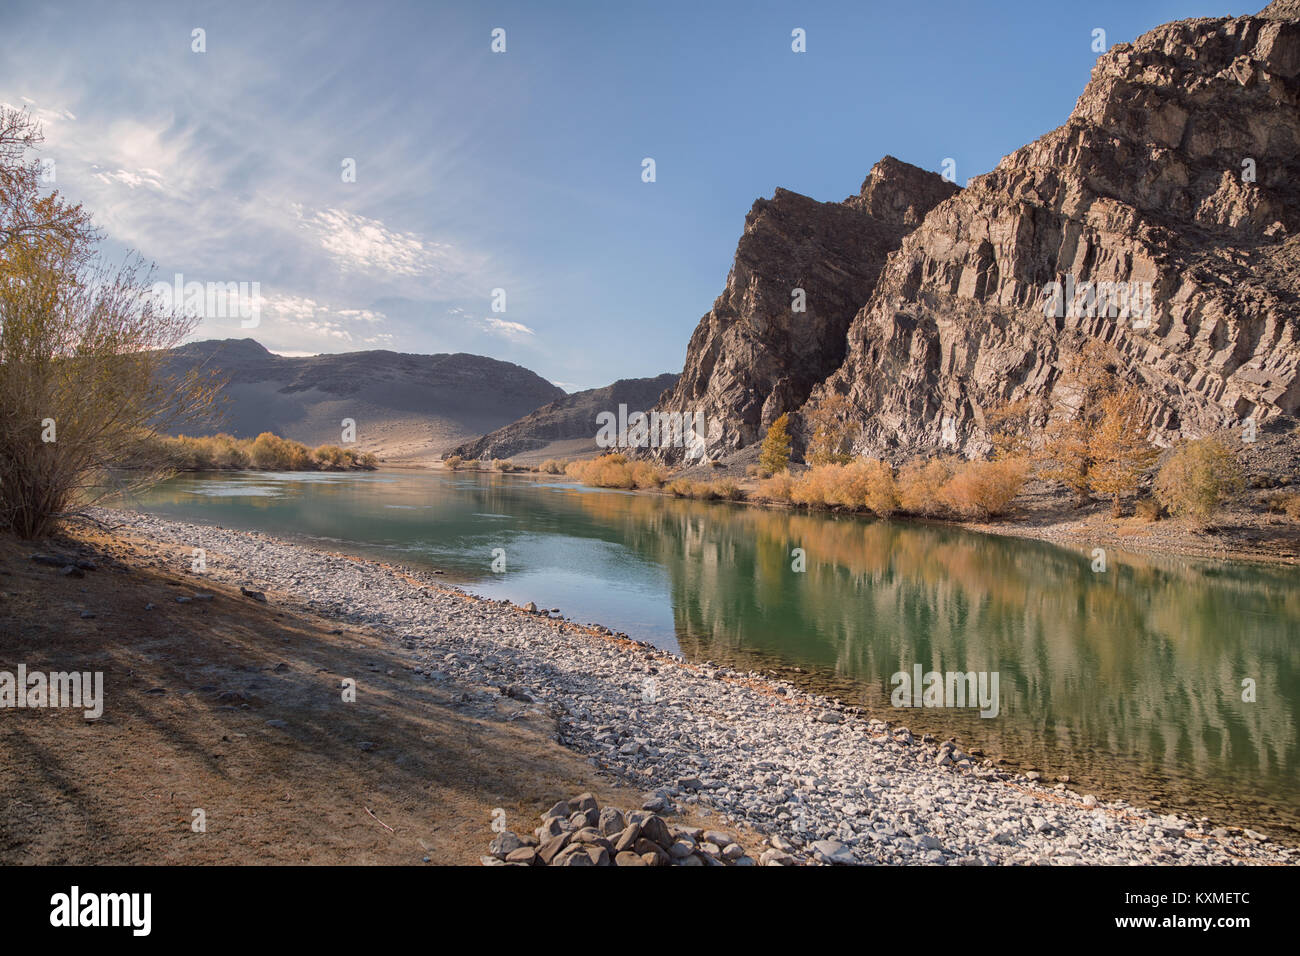 Green river bank yellow leafs fall golden hour calm stream river reflections cliffs Mongolia - Stock Image